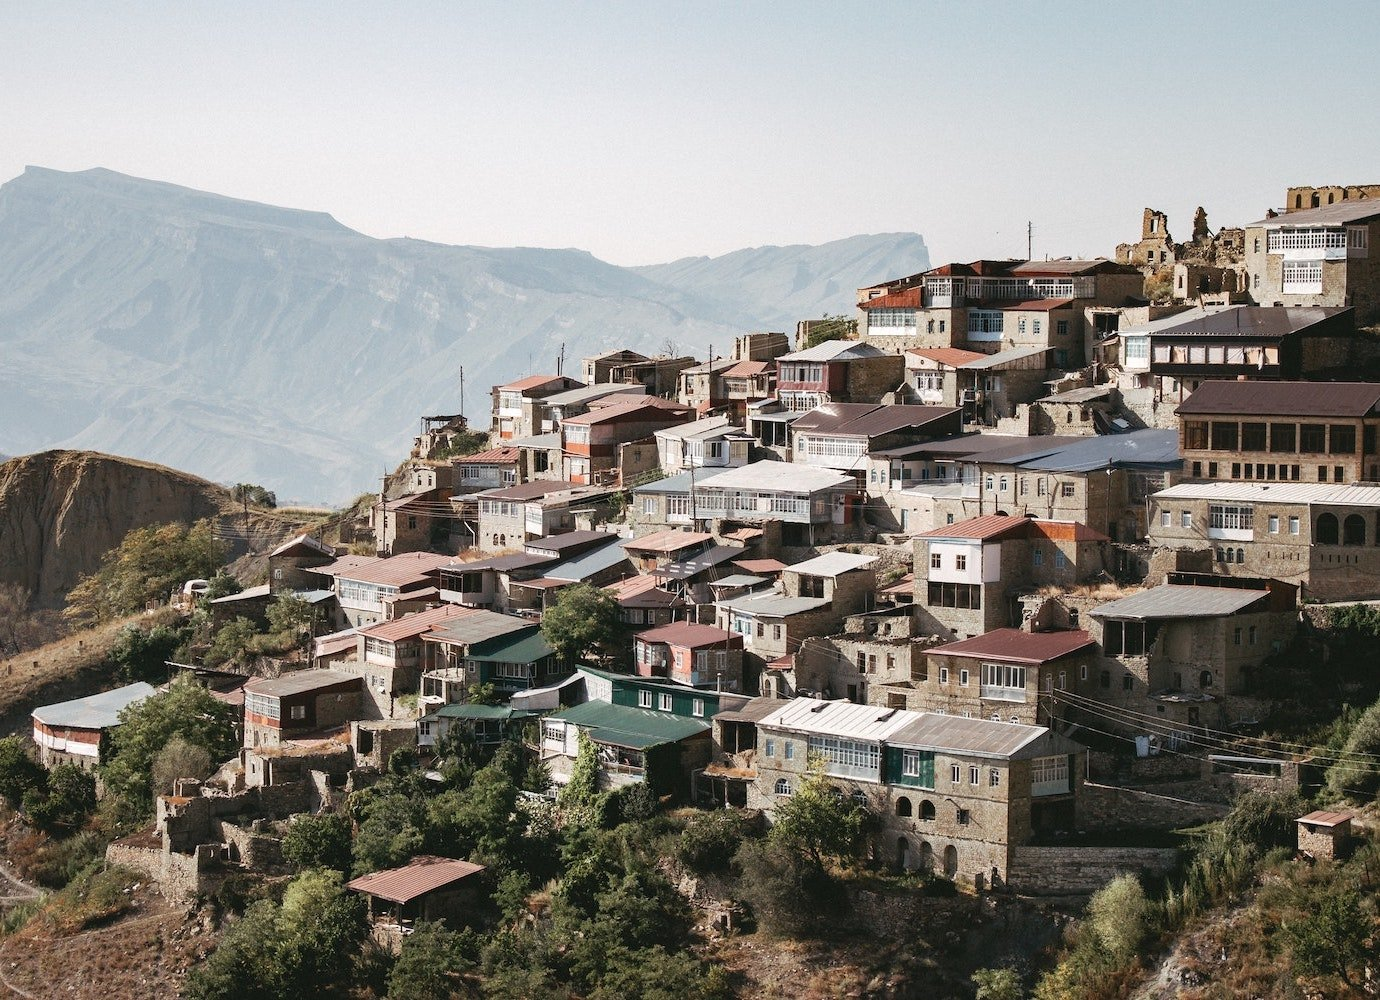 Amid a mass exodus, could ethnotourism save Dagestan's mountain villages?